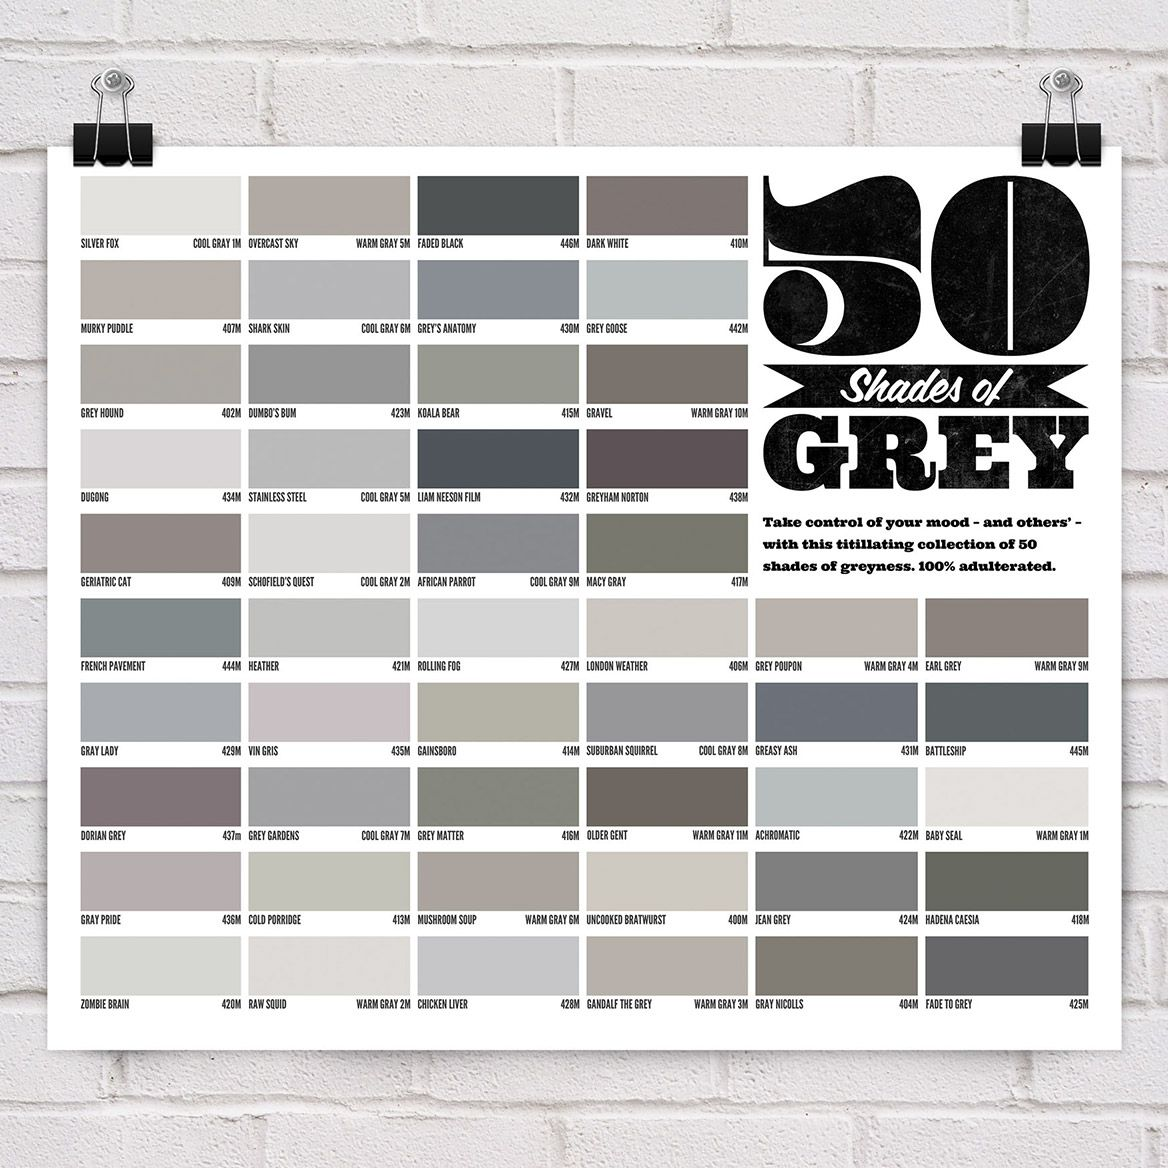 50 shades of grey poster | 50 shades, gray and pantone chart